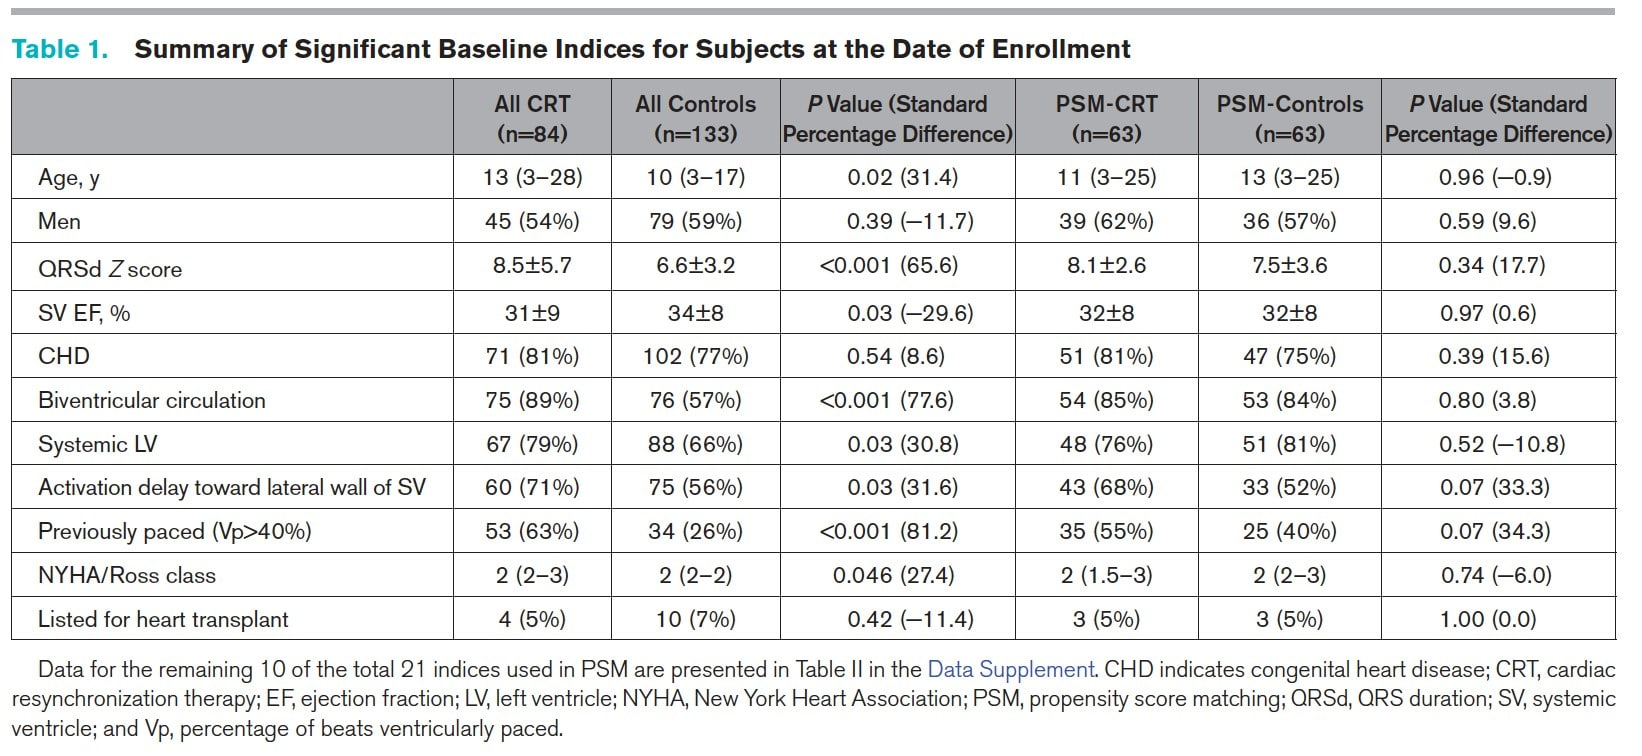 Summary of Signigicant Baseline Indices for Subjects